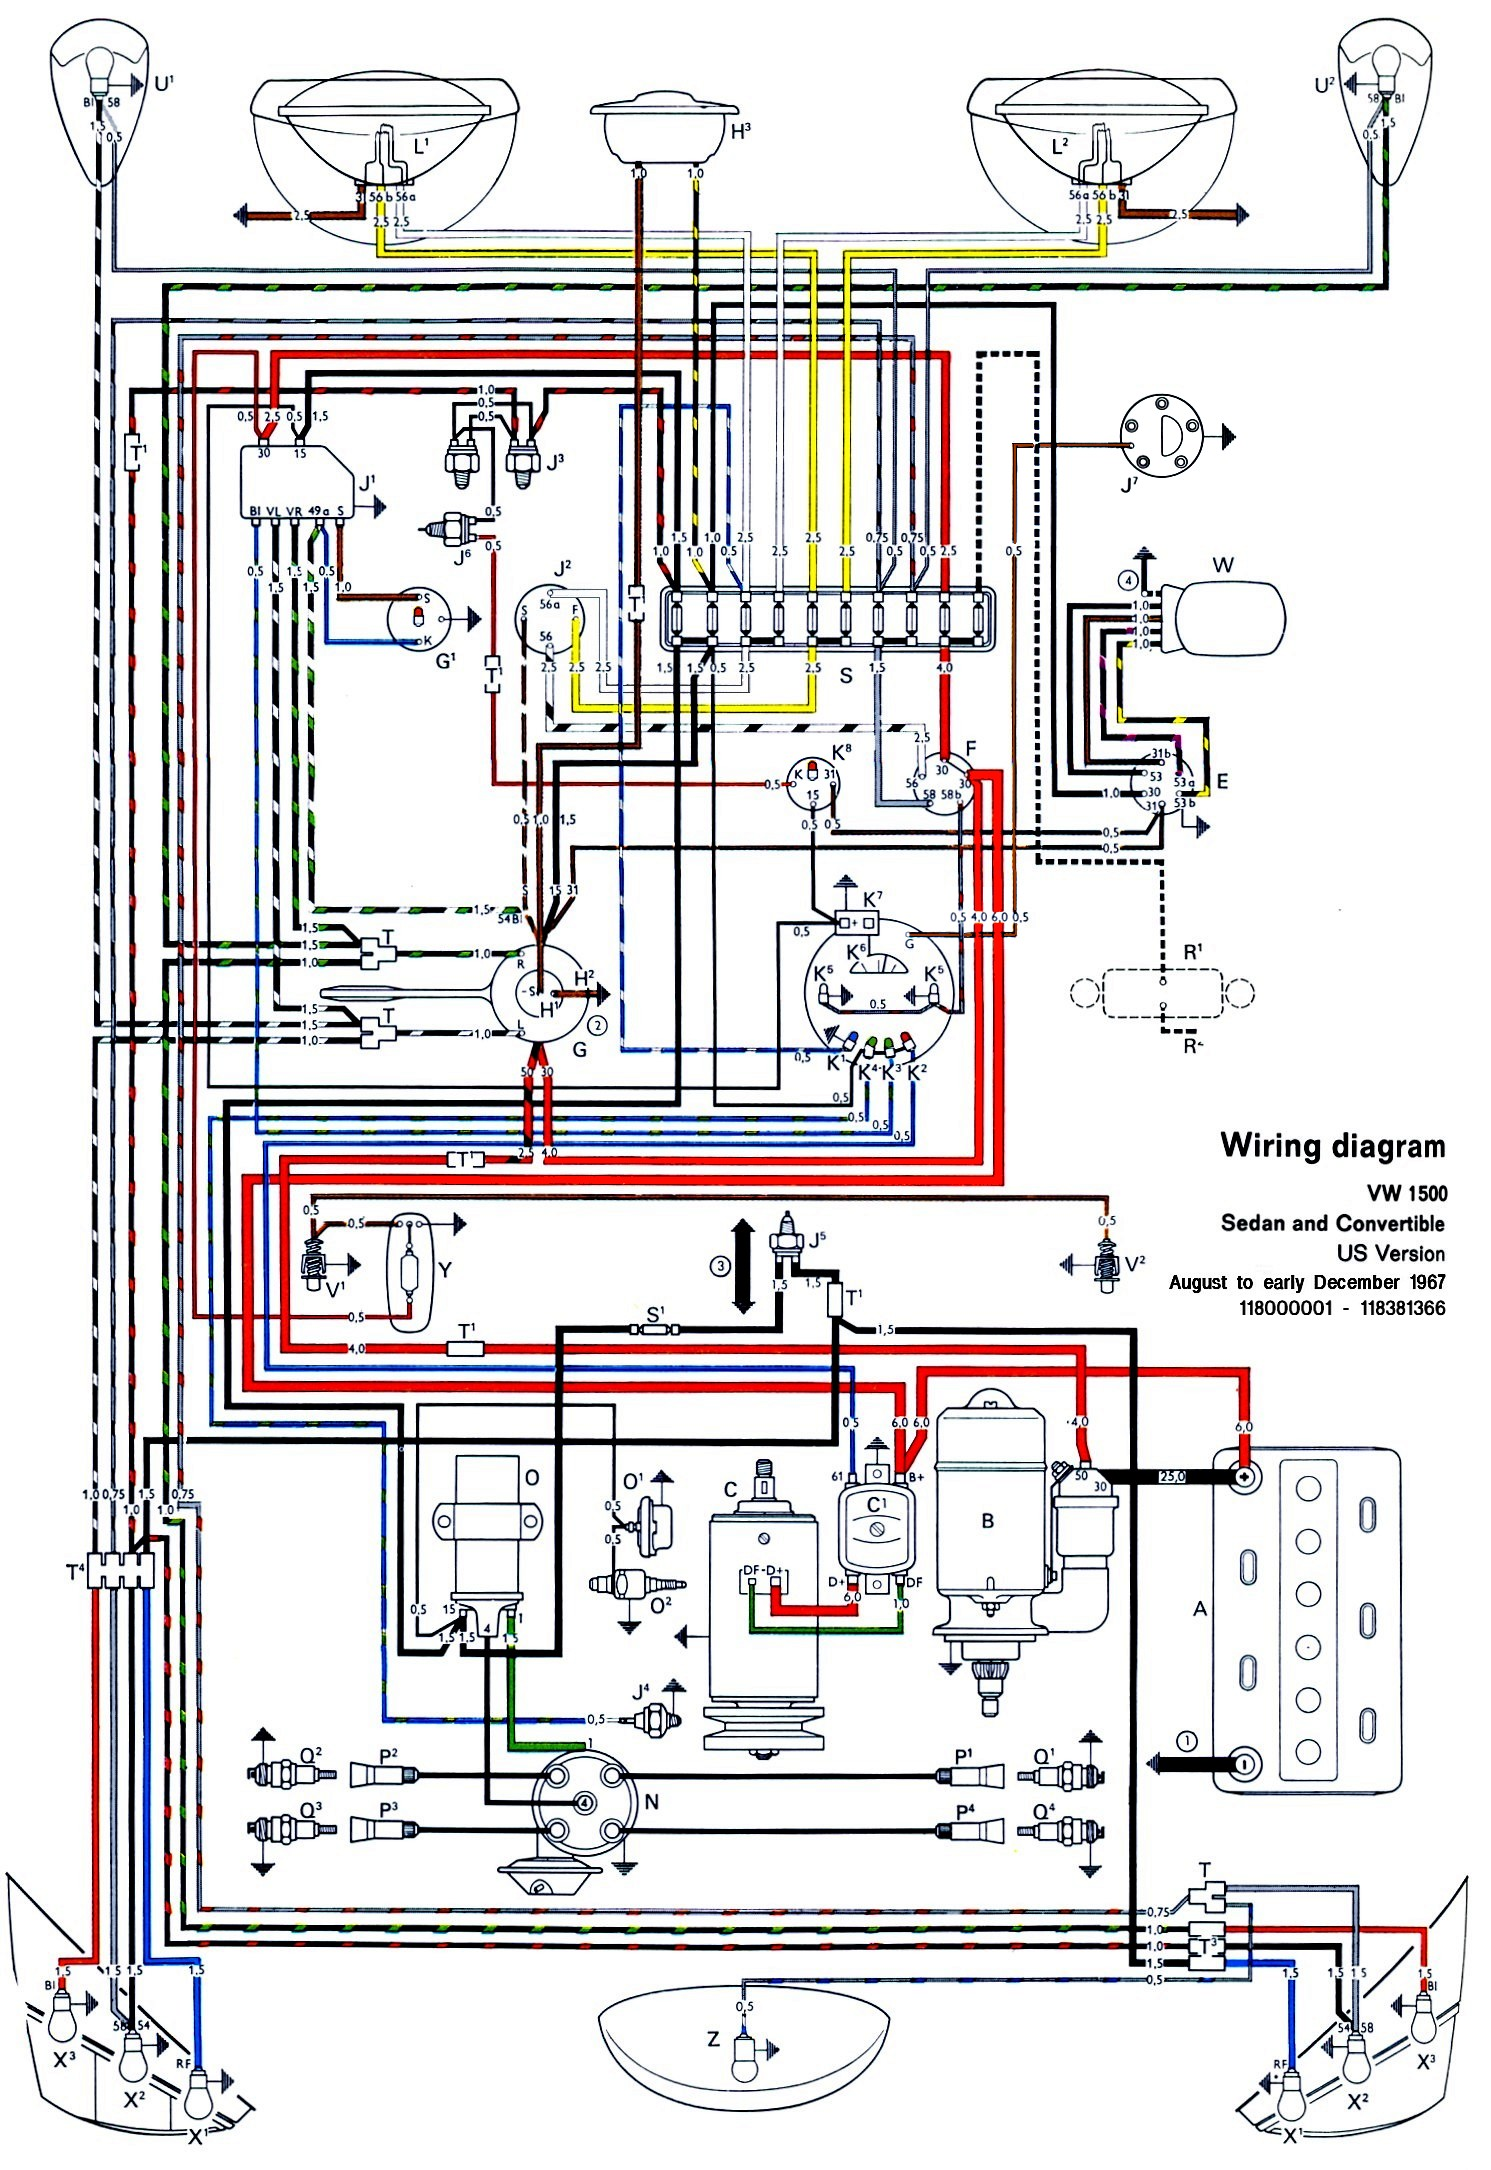 bug_68_early_usa?resize=665%2C968&ssl=1 diagrams 19191168 vw golf wiring diagram electrical wiring vw golf 3 electrical wiring diagram at gsmx.co